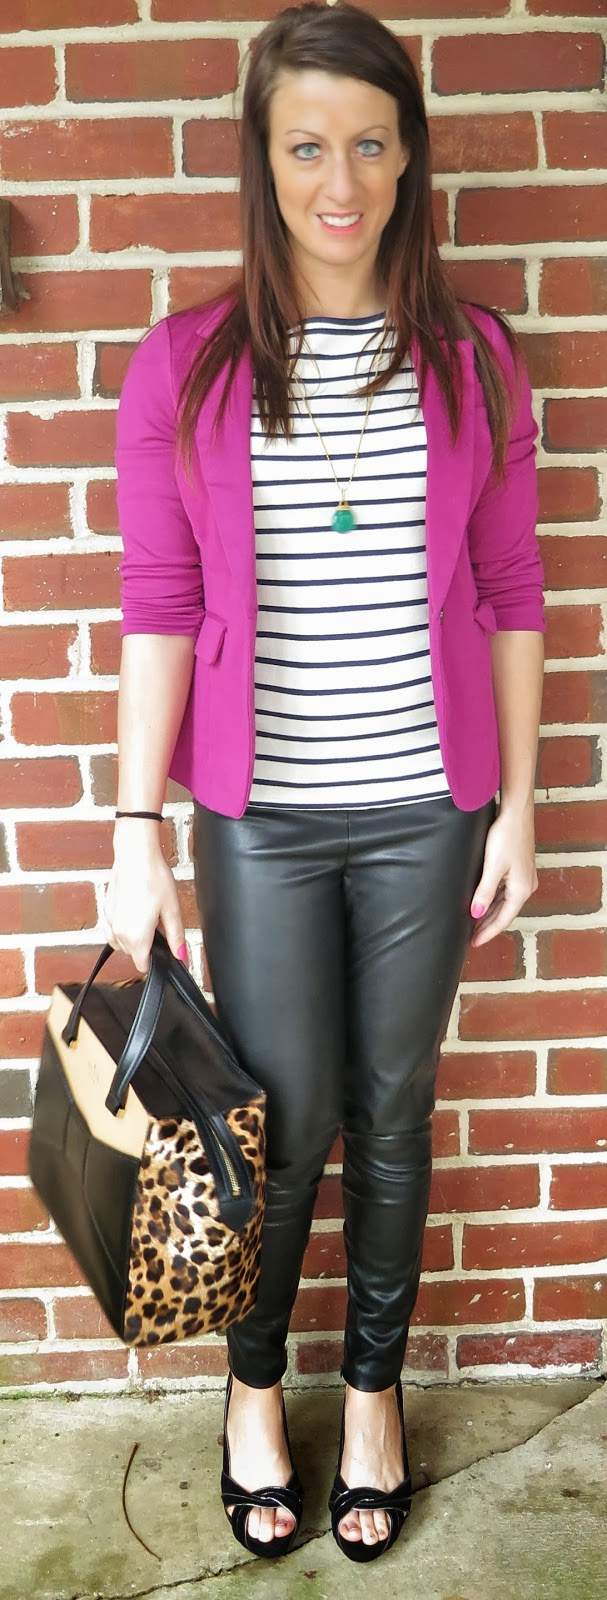 b20ed97dff39f Fashion, kate spade, leather leggings, leopard, ootd, Outfit Ideas, outfit